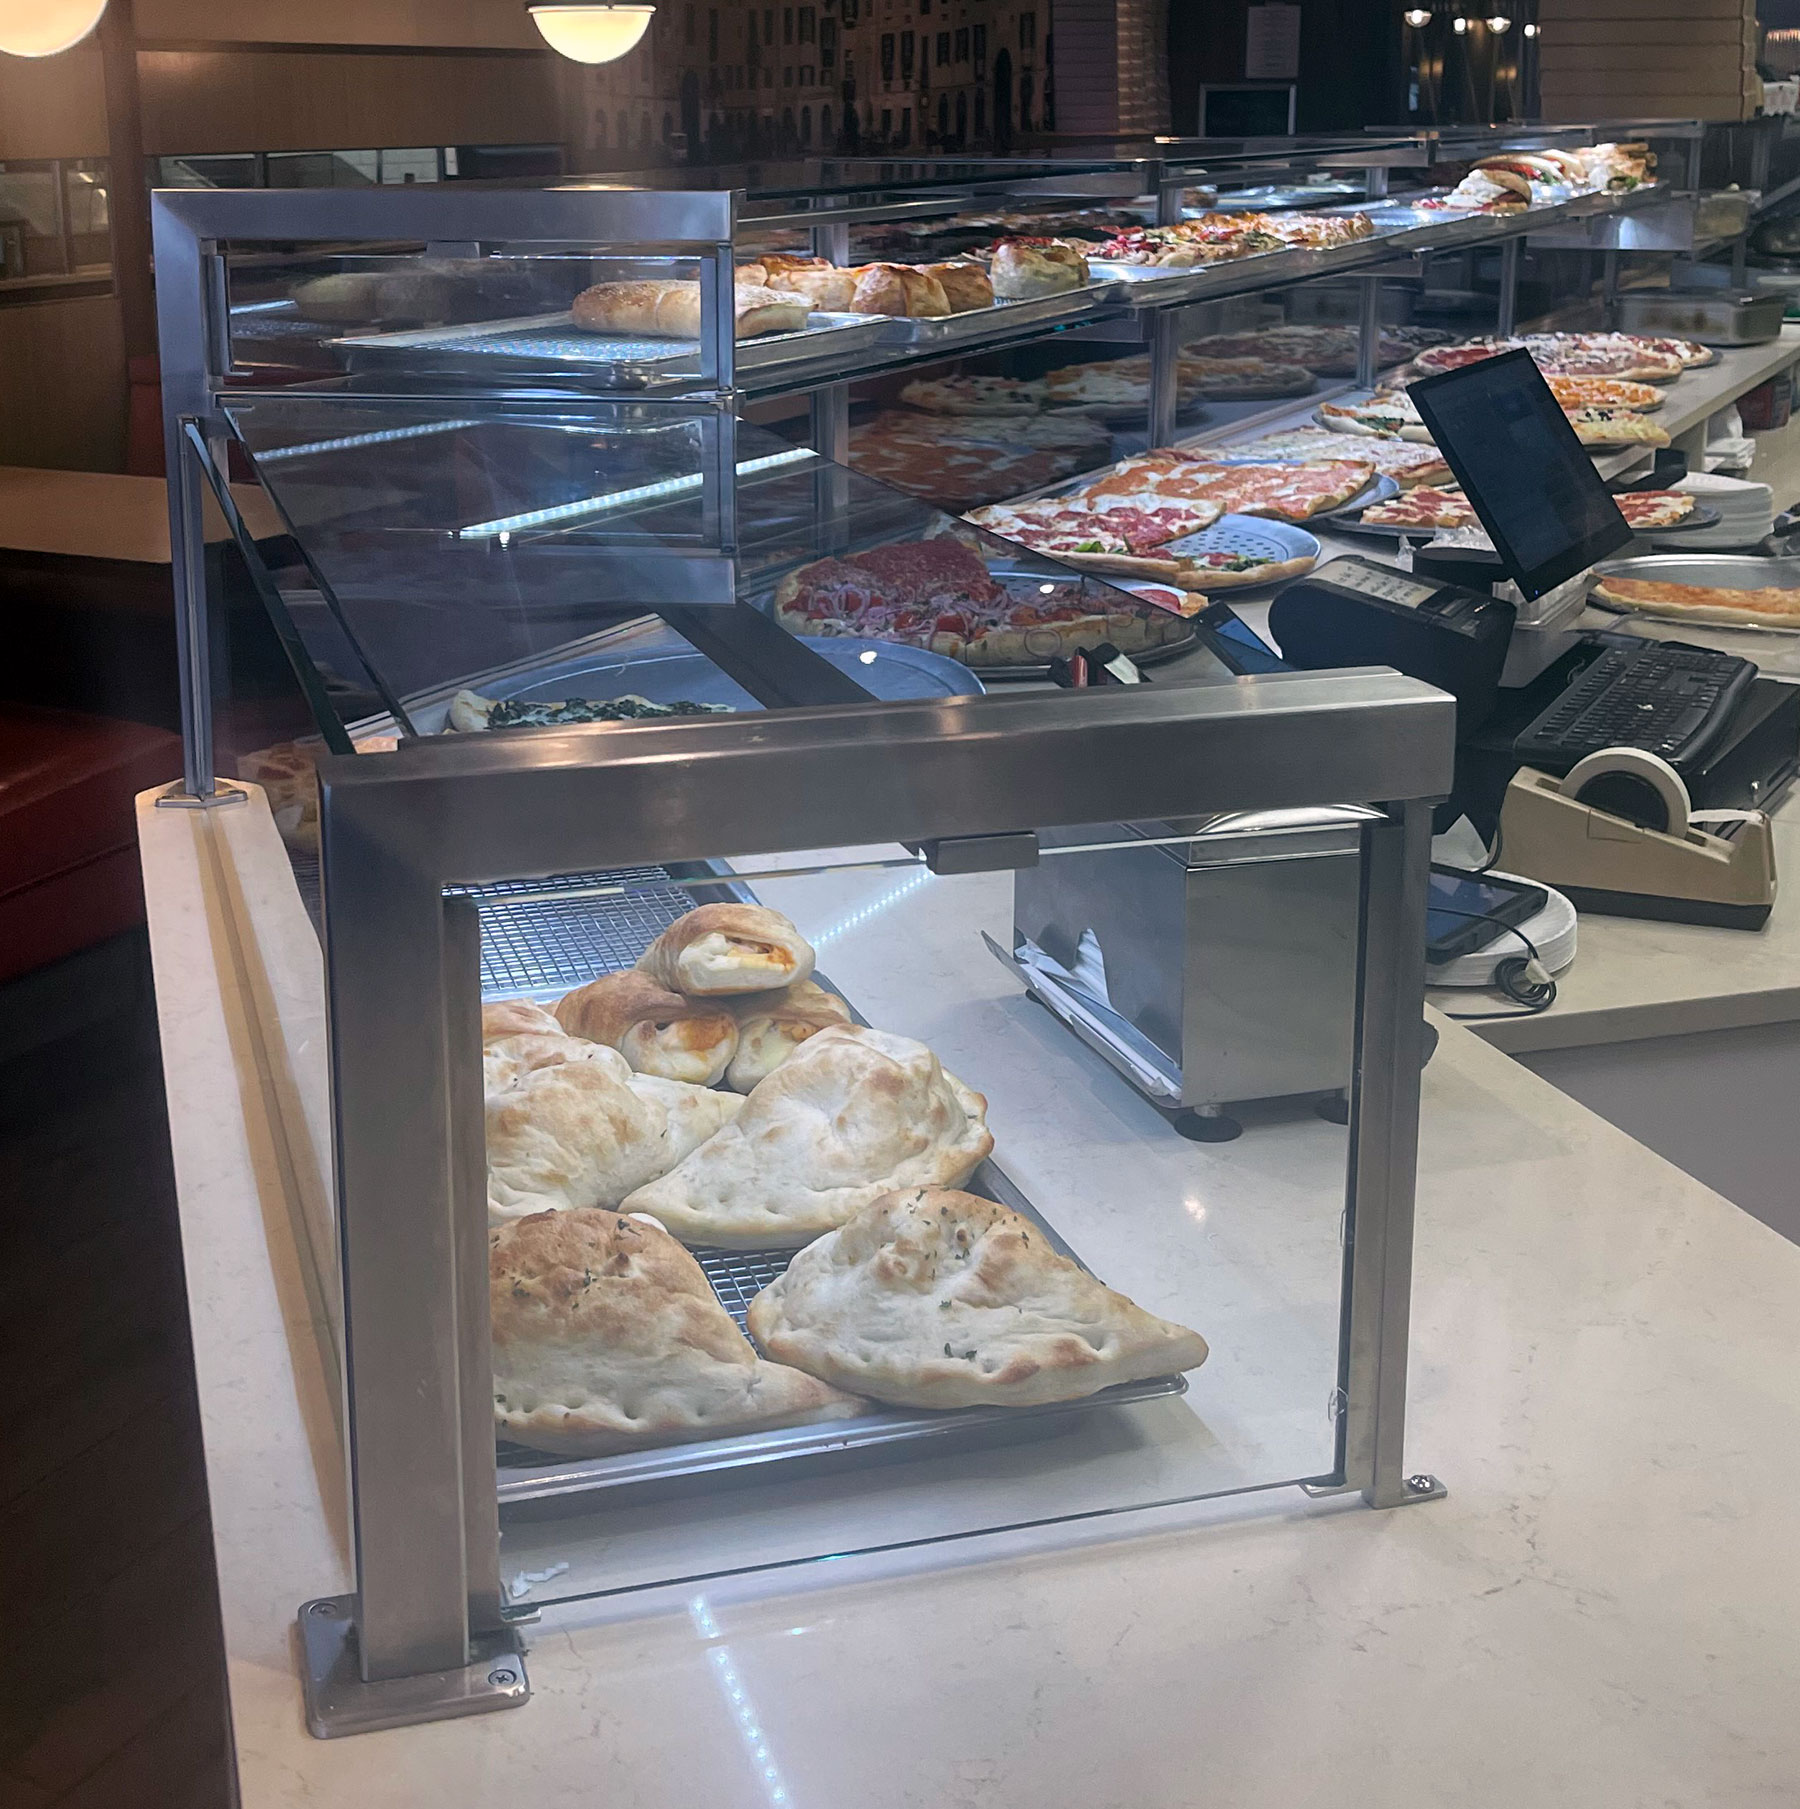 Satin Stainless Steel Food Shields with LED Lights - Alitalia Pizzeria